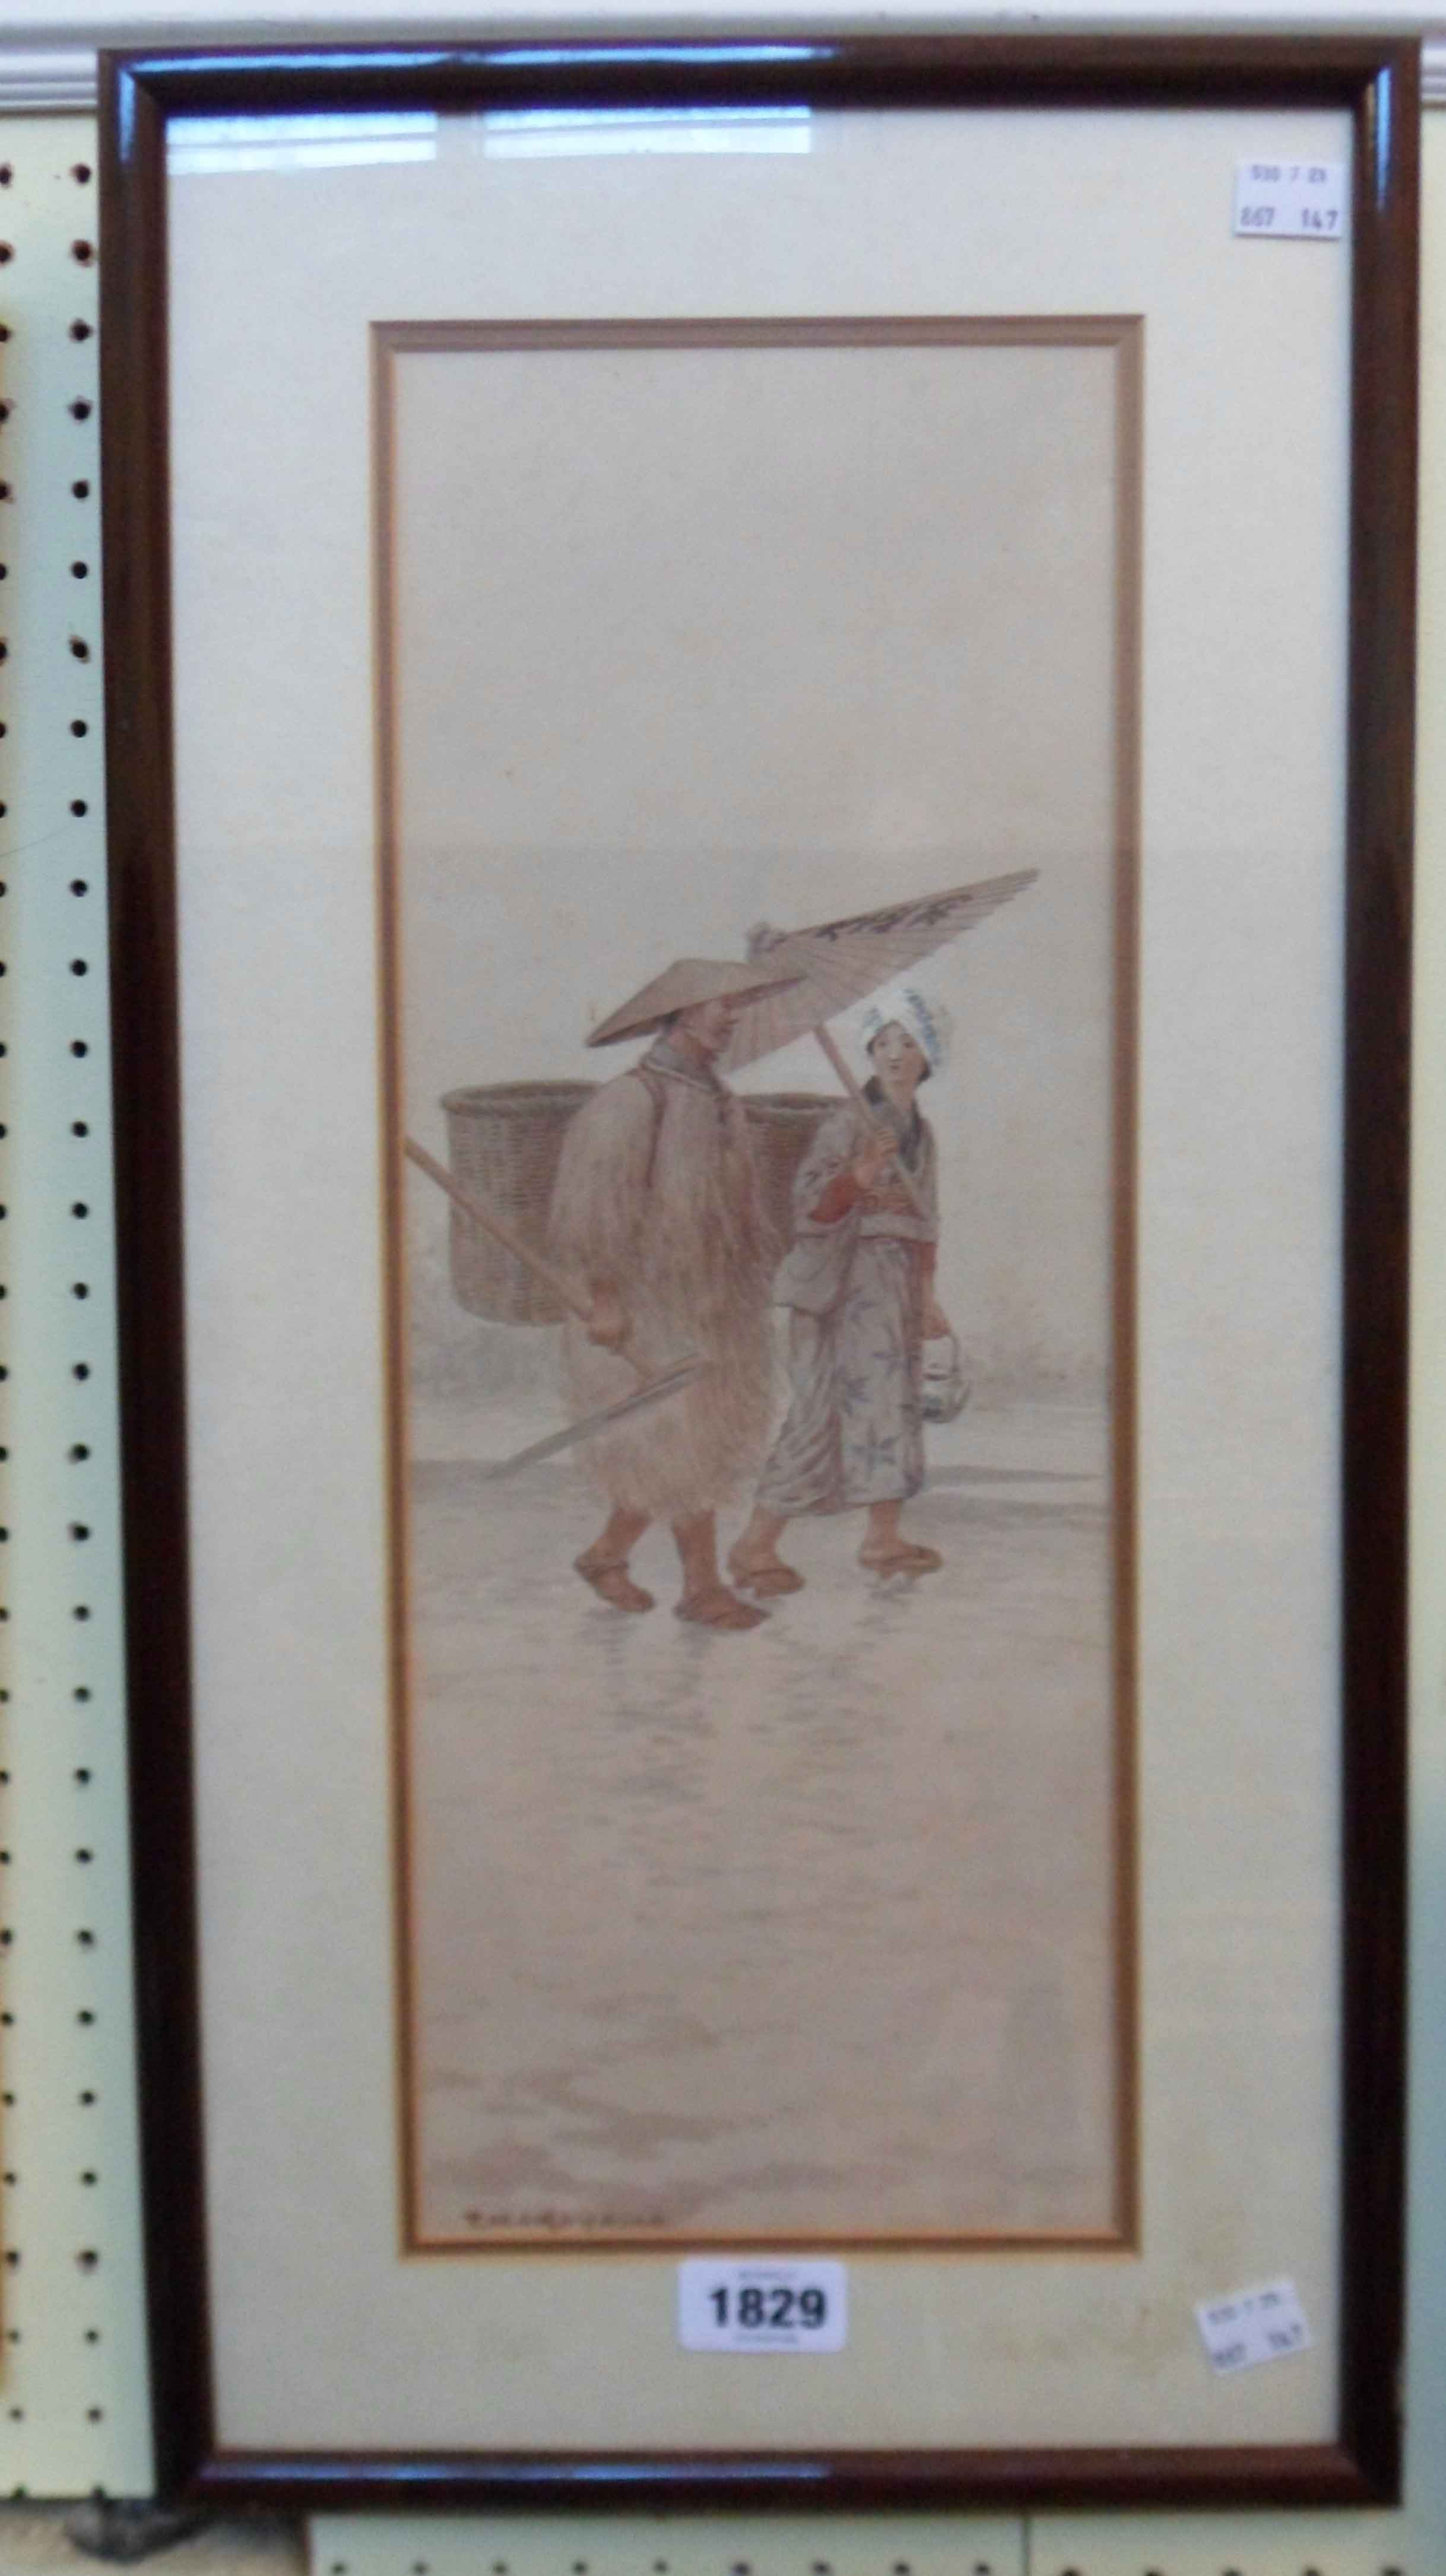 Takashi Nakayama: a framed watercolour, depicting farmers working in the paddy fields - signed -